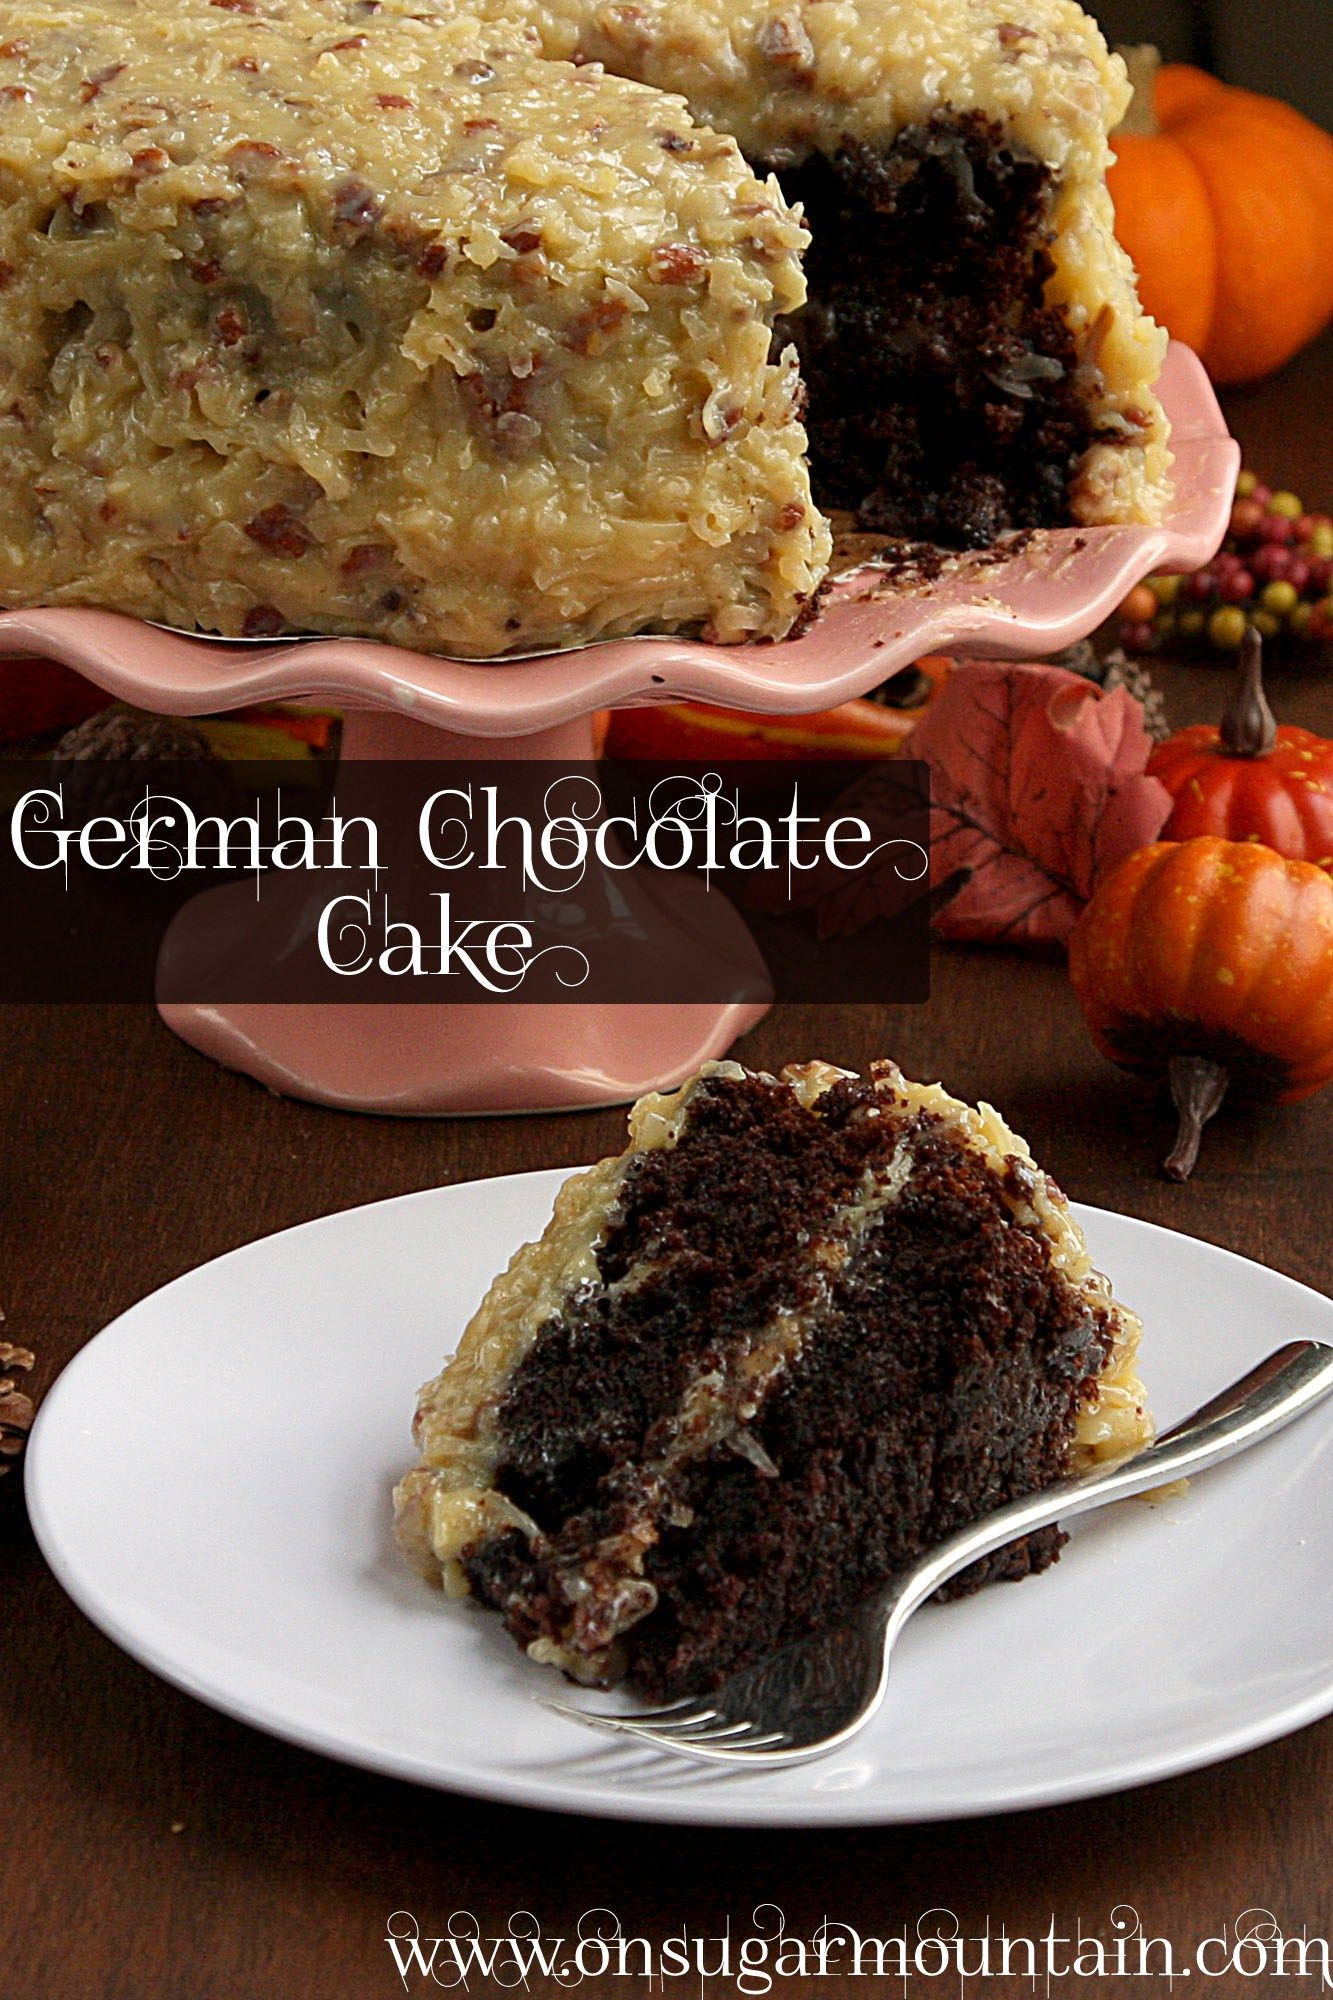 German Chocolate Cake With Images German Chocolate Cake Recipe Food Chocolate Cake Recipe